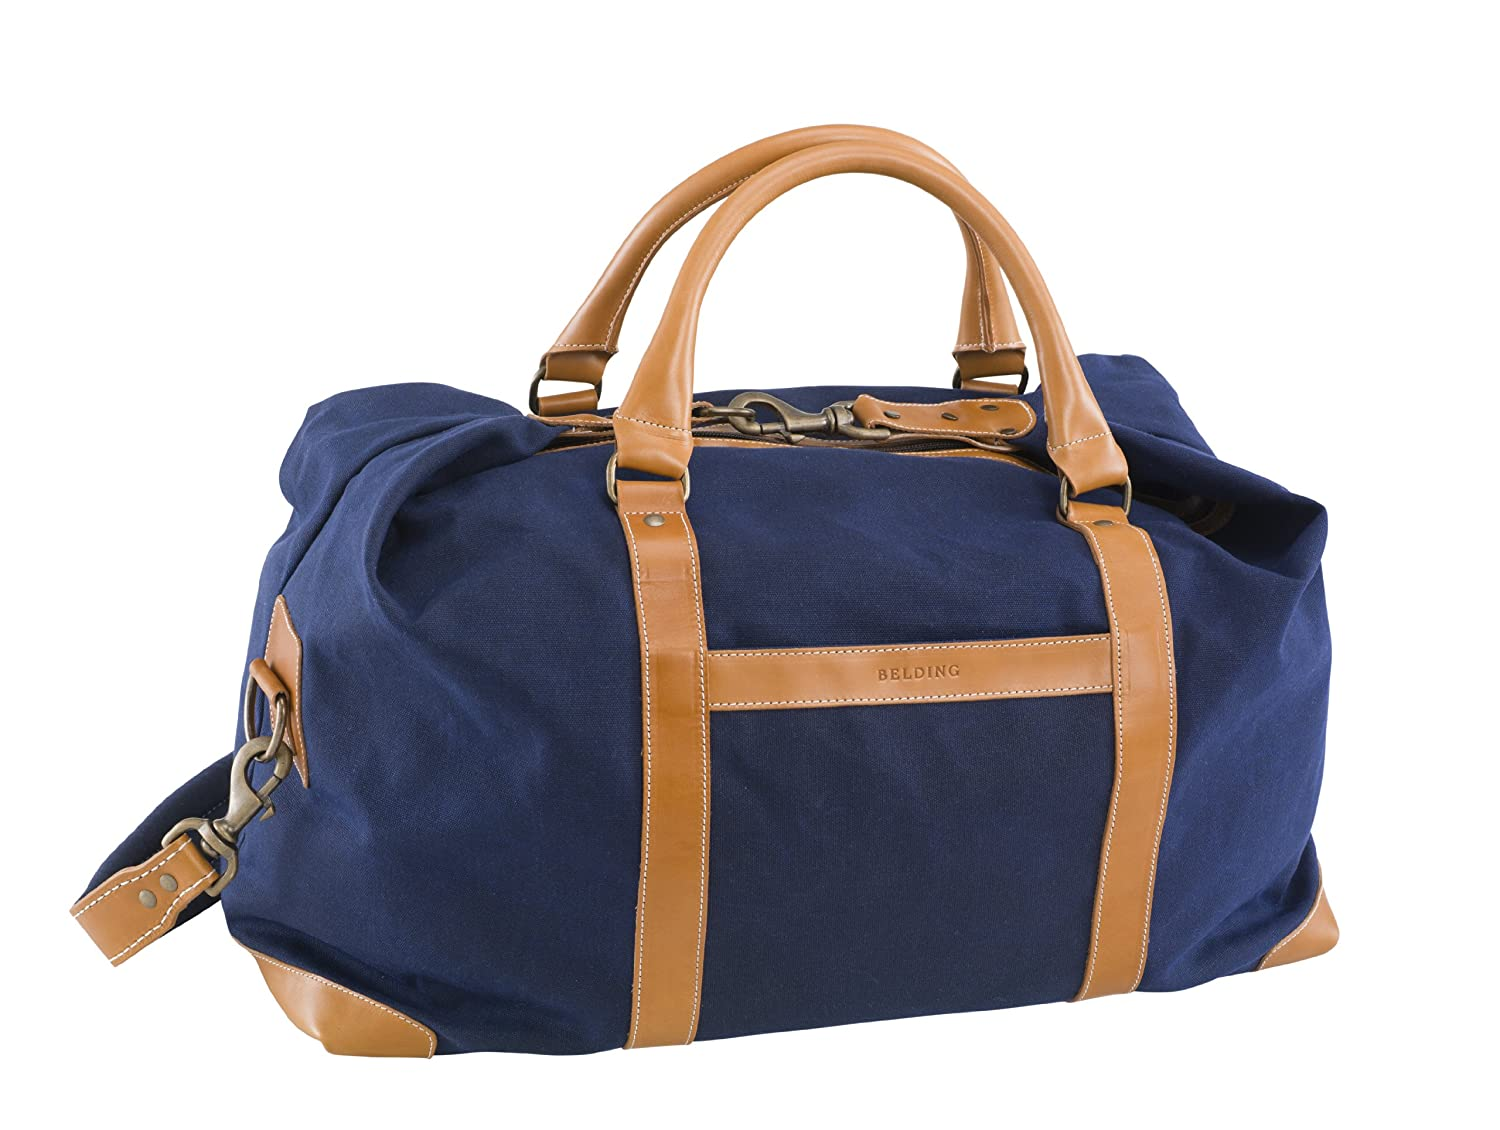 BELDING American Collection Satchel Duffle Bag, Navy bbox200 1 200 american frontier airlines boeing 737 200 aircraft model n1pc alloy collection model